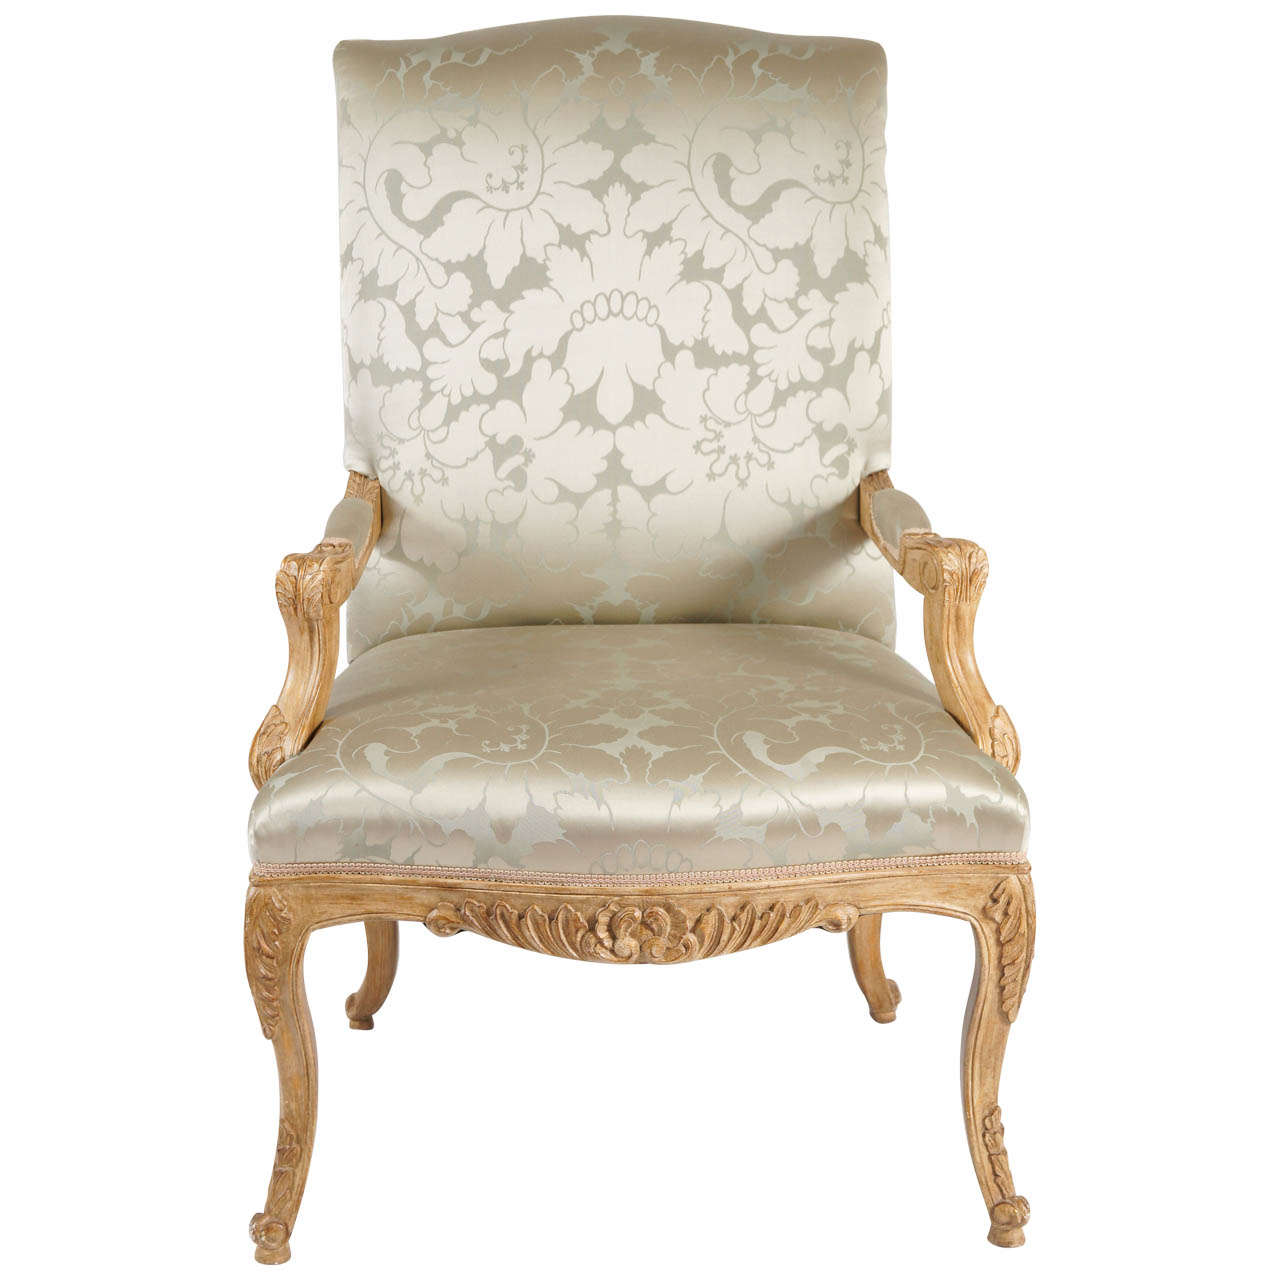 Louis The 14th Furniture Louis Xiv Style Chair Silk Damask Upholstery At 1stdibs